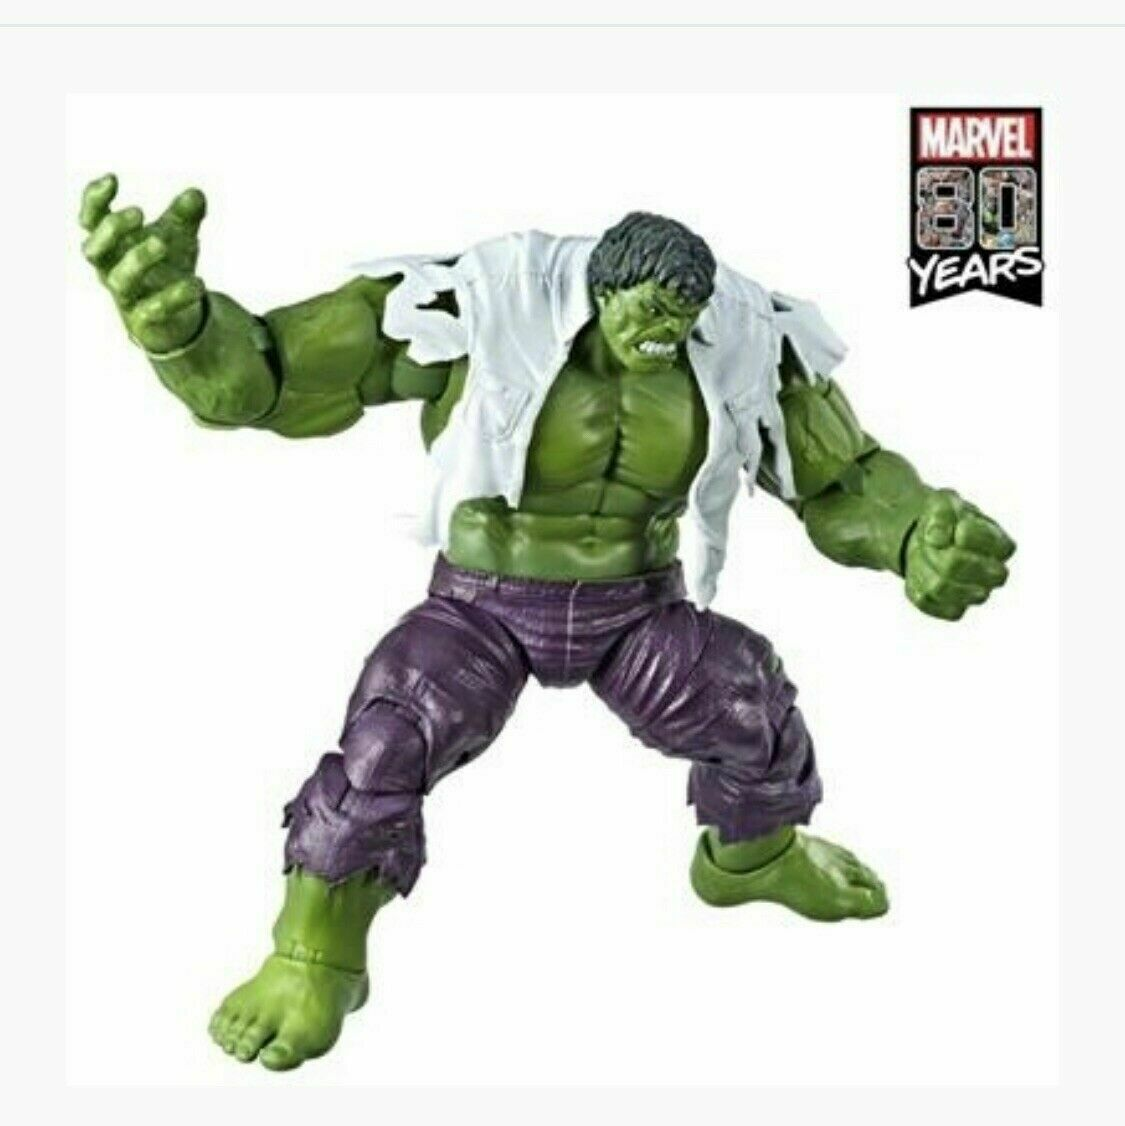 Wolverine seulement Ici Marvel Legends 80th Anniversaire Hulk 2 Pack Action Figure